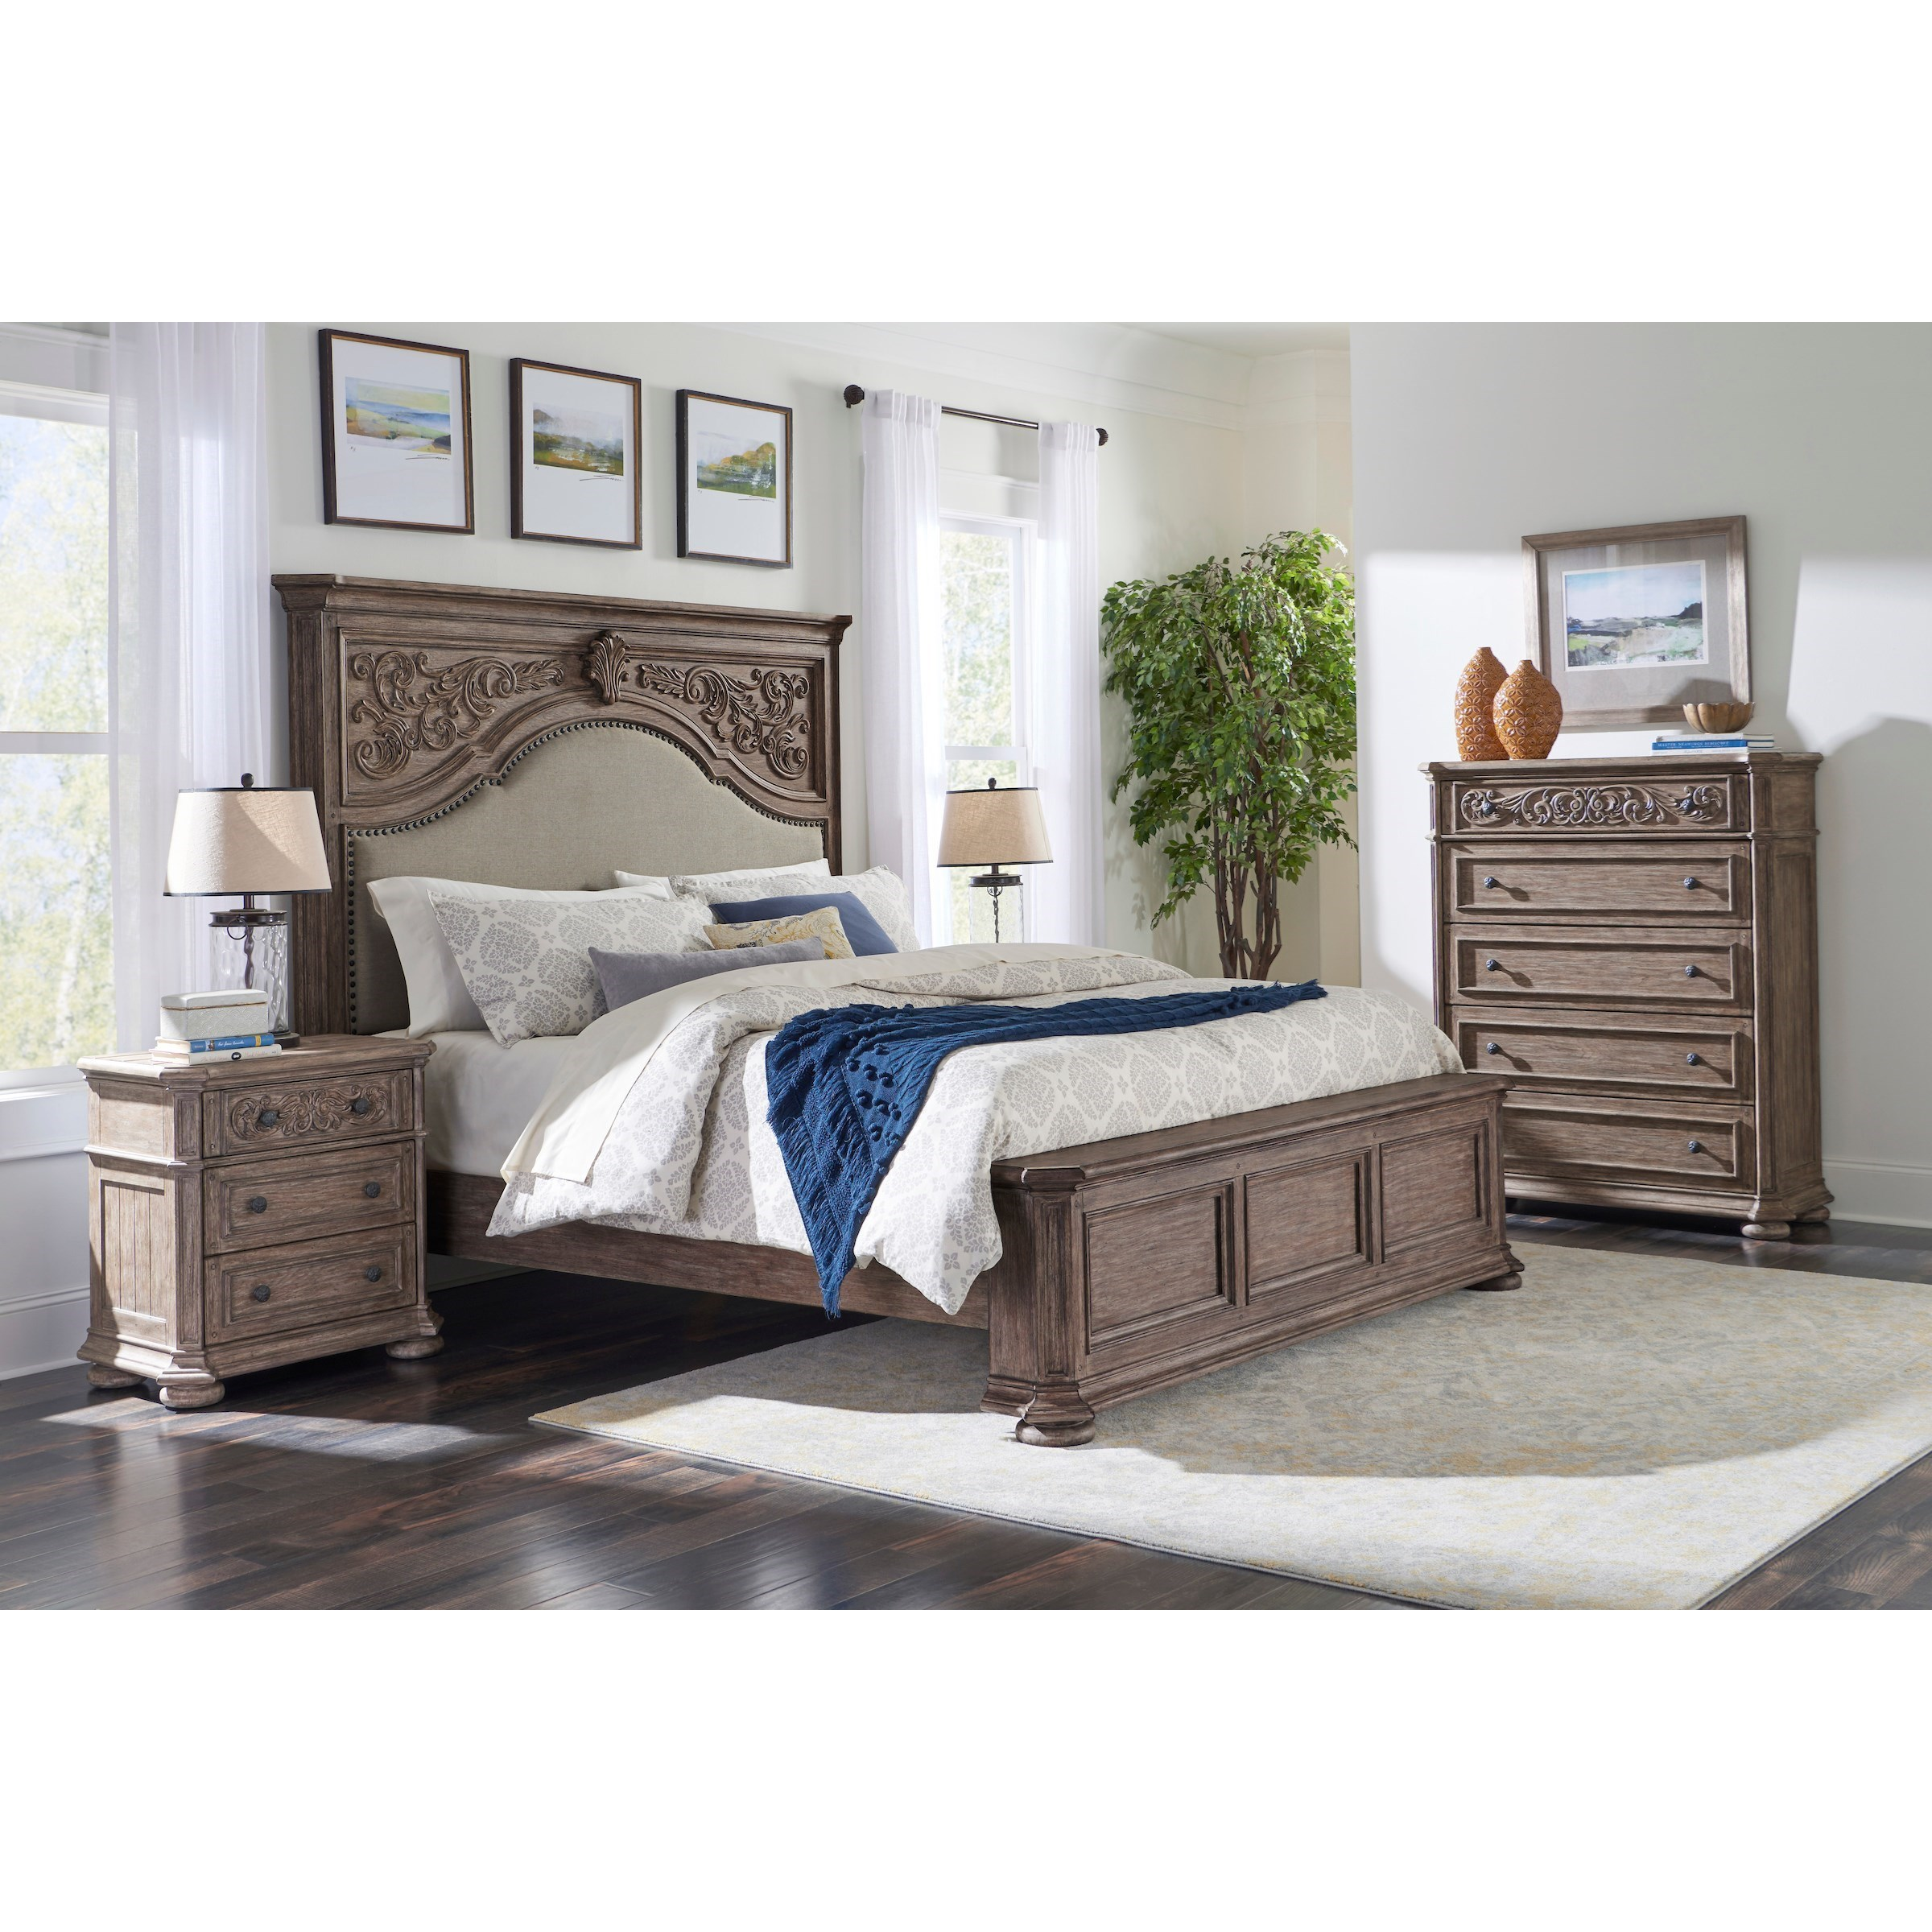 Cardoso King Bedroom Group  by Klaussner International at Northeast Factory Direct